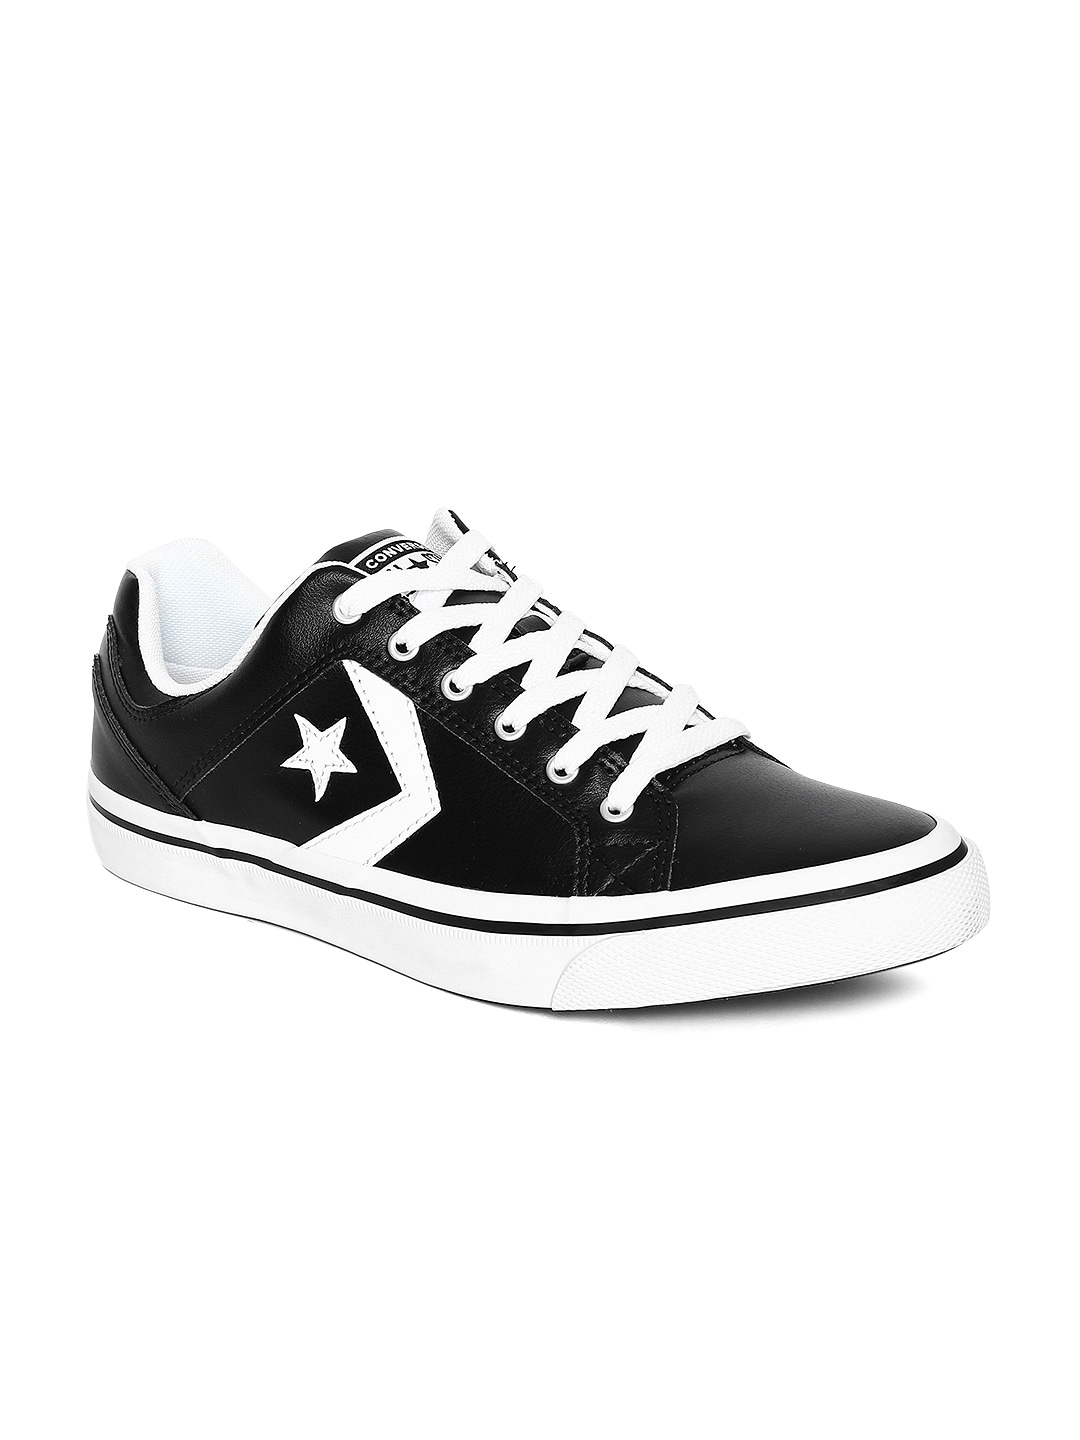 Men Jacket Casual Shoes - Buy Men Jacket Casual Shoes online in India 42aa2a0593b